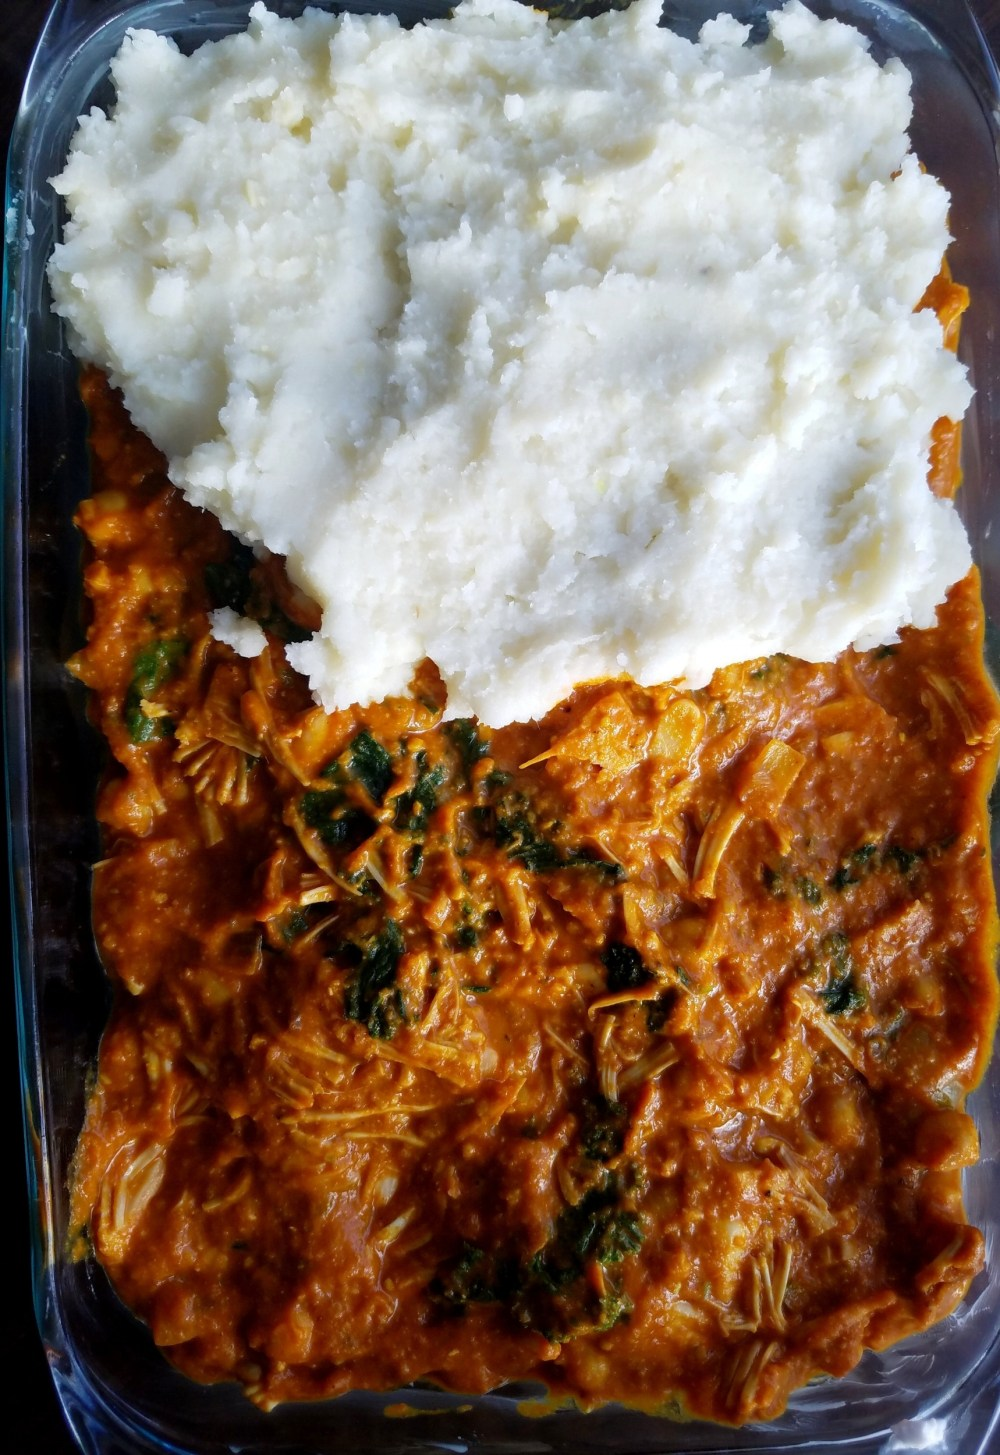 Madras curry spread in the bottom of a casserole dish and topped with savory coconut mashed potatoes